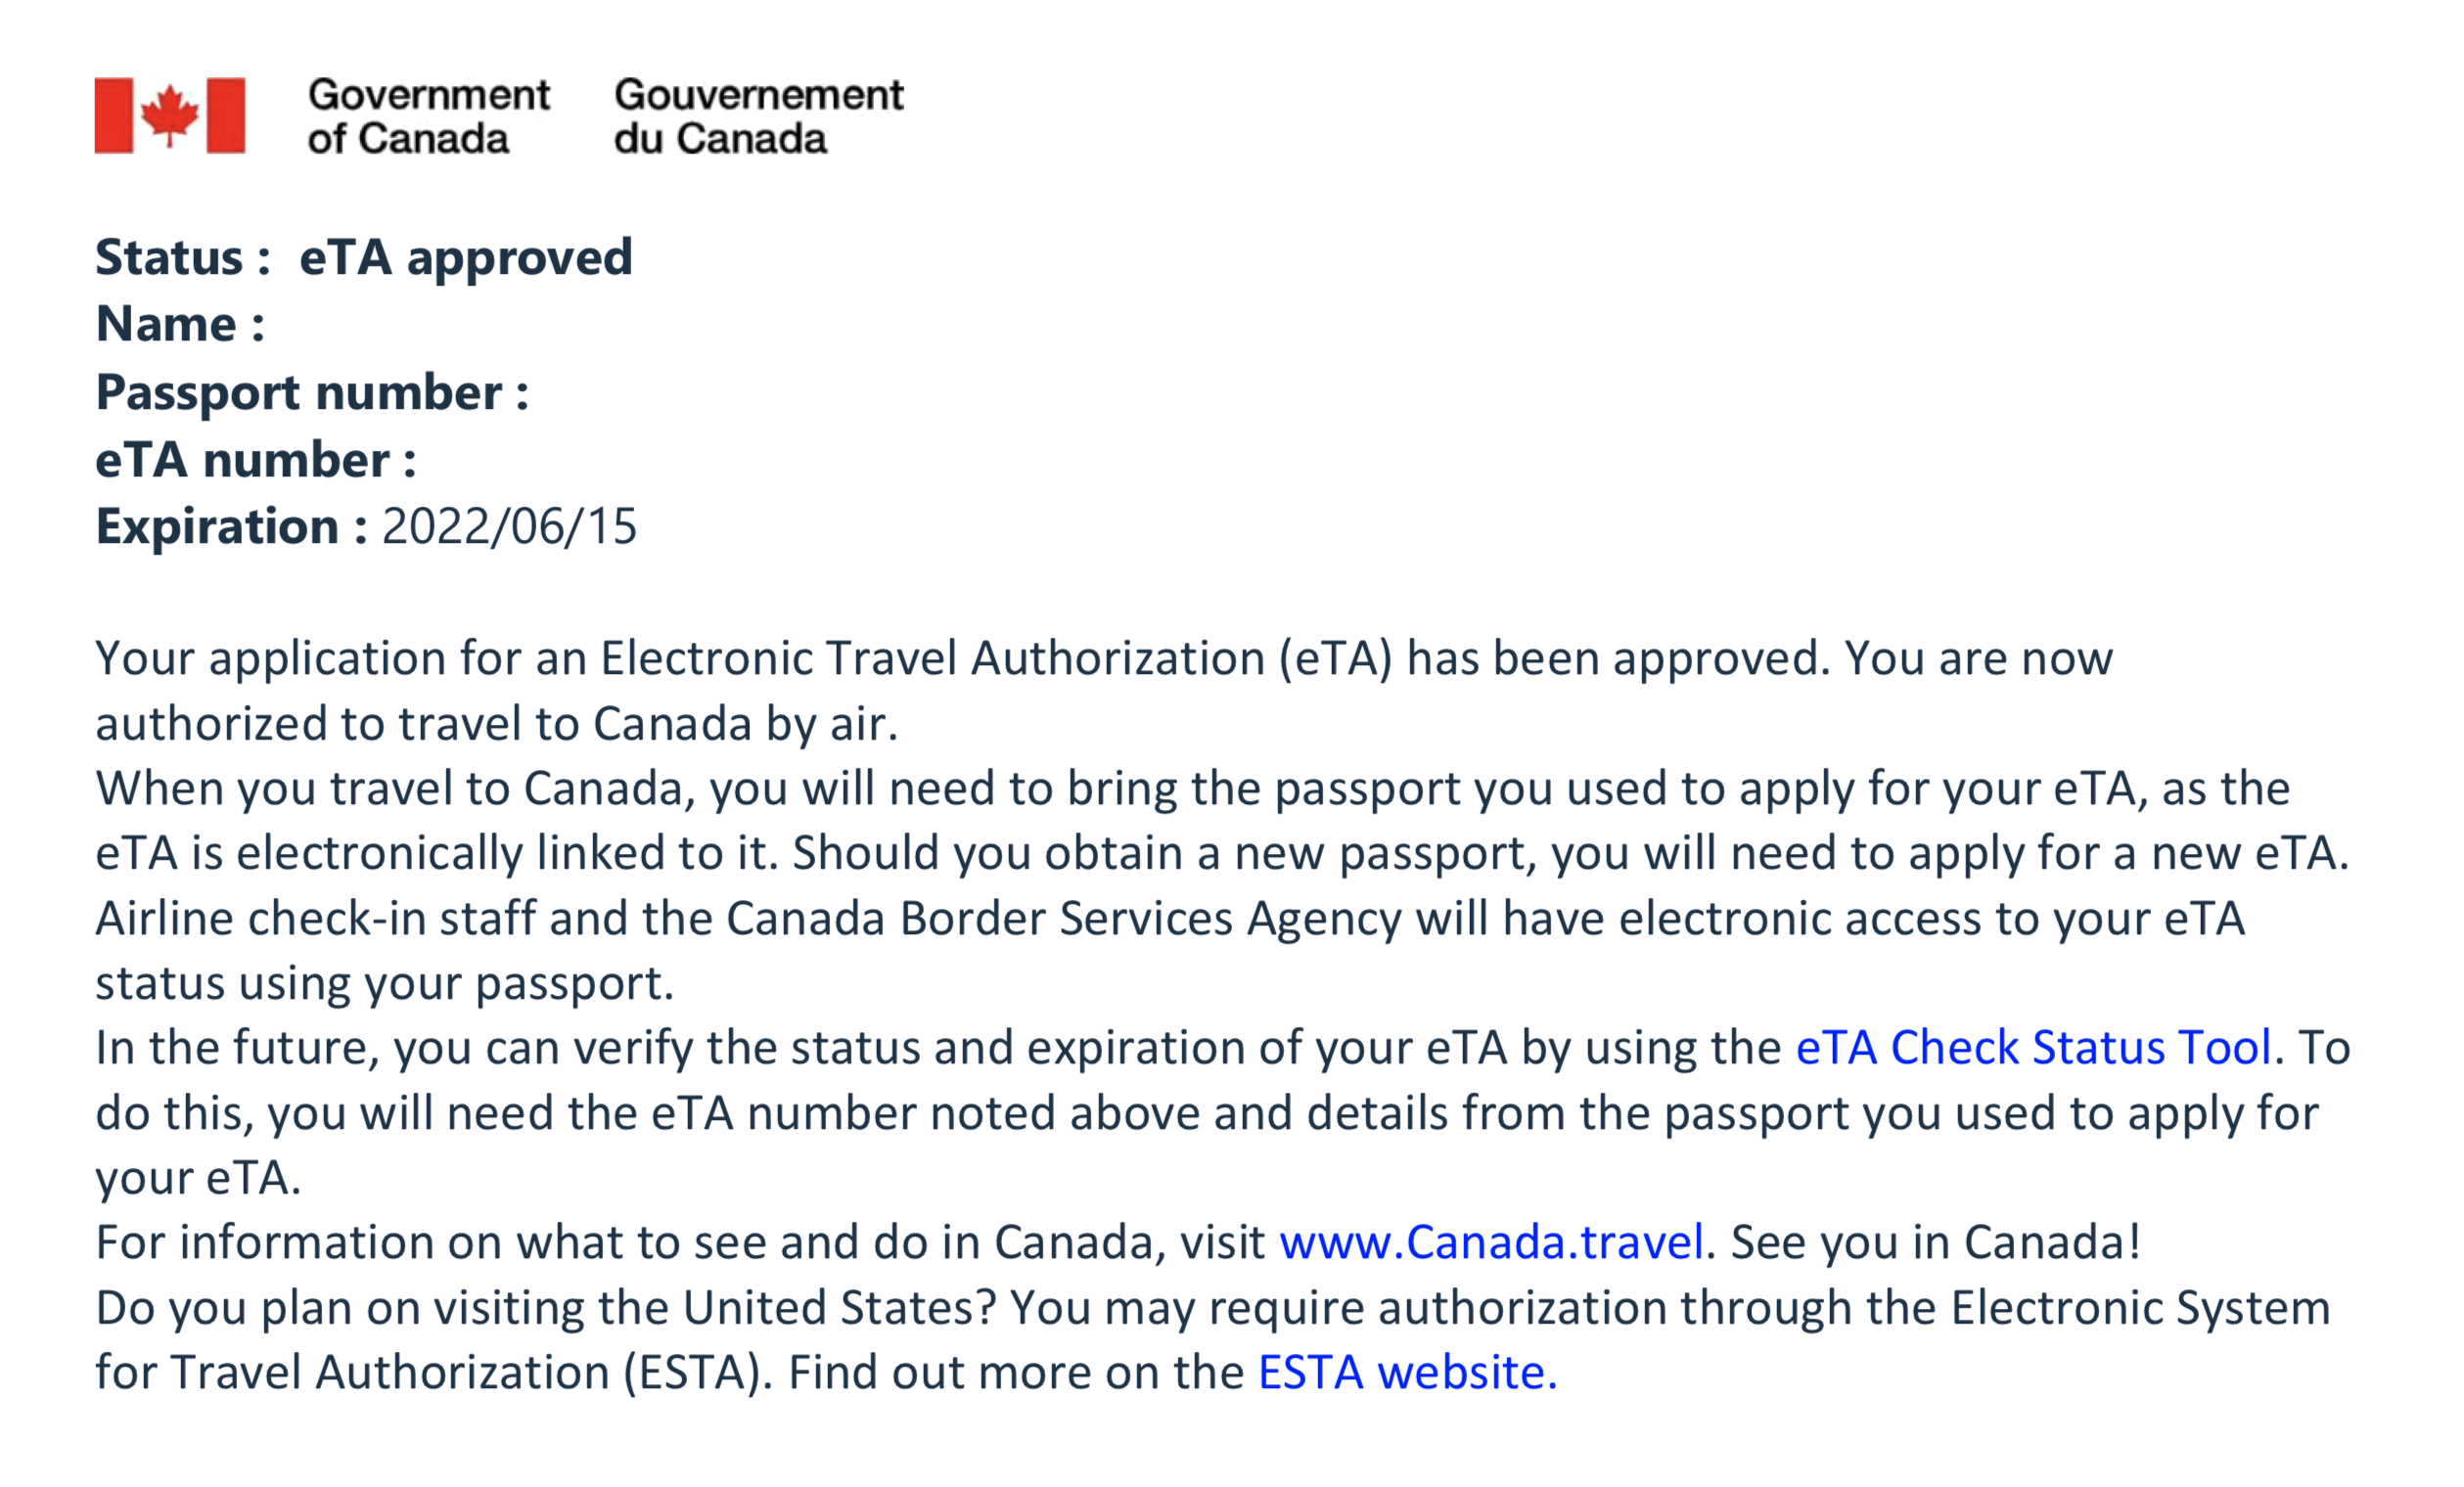 4171664453b56937d8acc3506cc9775d - Government Of Canada Online Visa Application